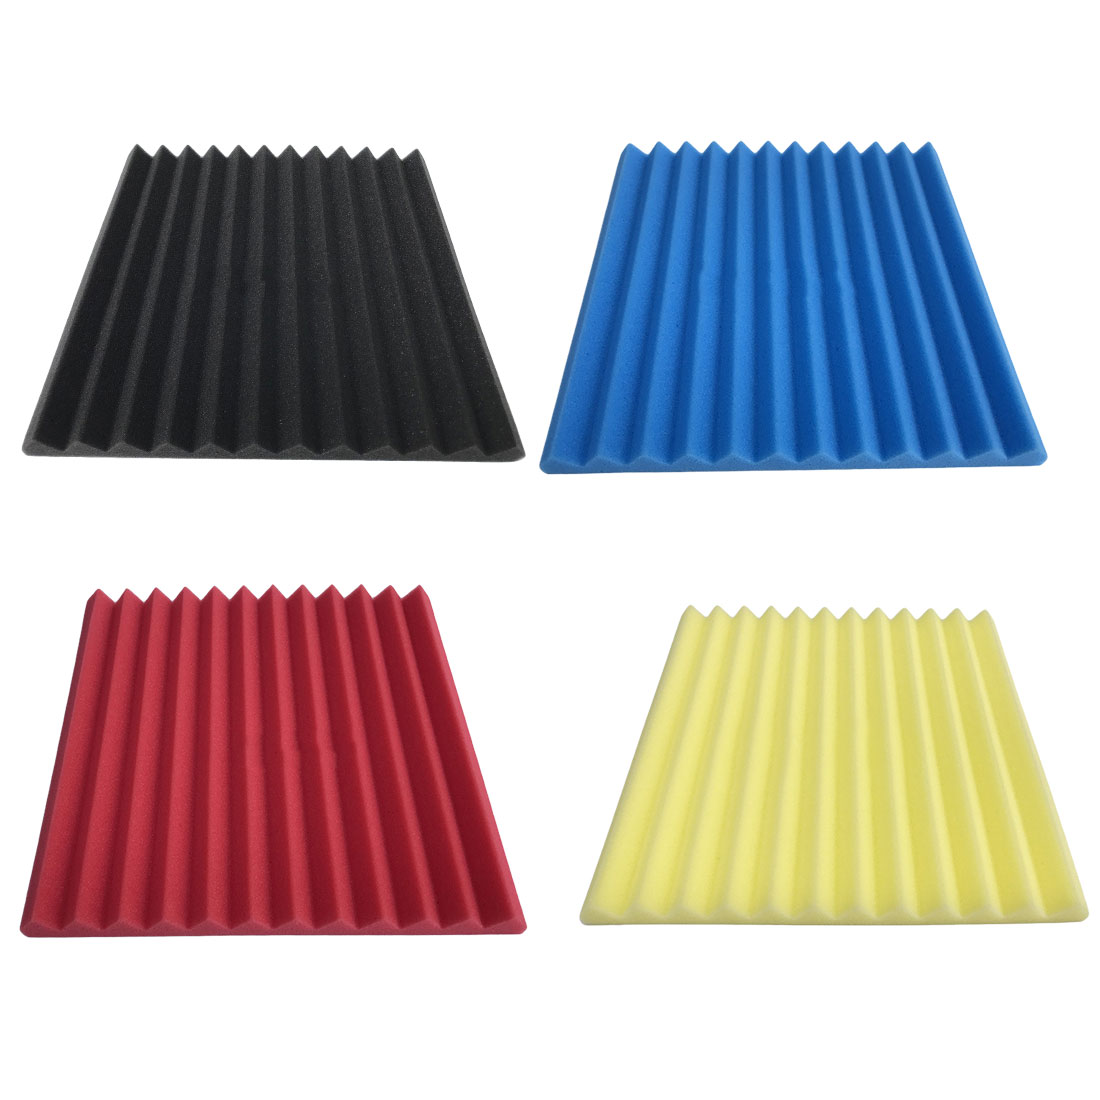 8Pcs 305 x 305 x 25mm Soundproofing Foam Acoustic Foam Sound Treatment Studio Room Absorption Wedge Tiles Polyurethane foam коробка для мушек snowbee slit foam compartment waterproof fly box x large